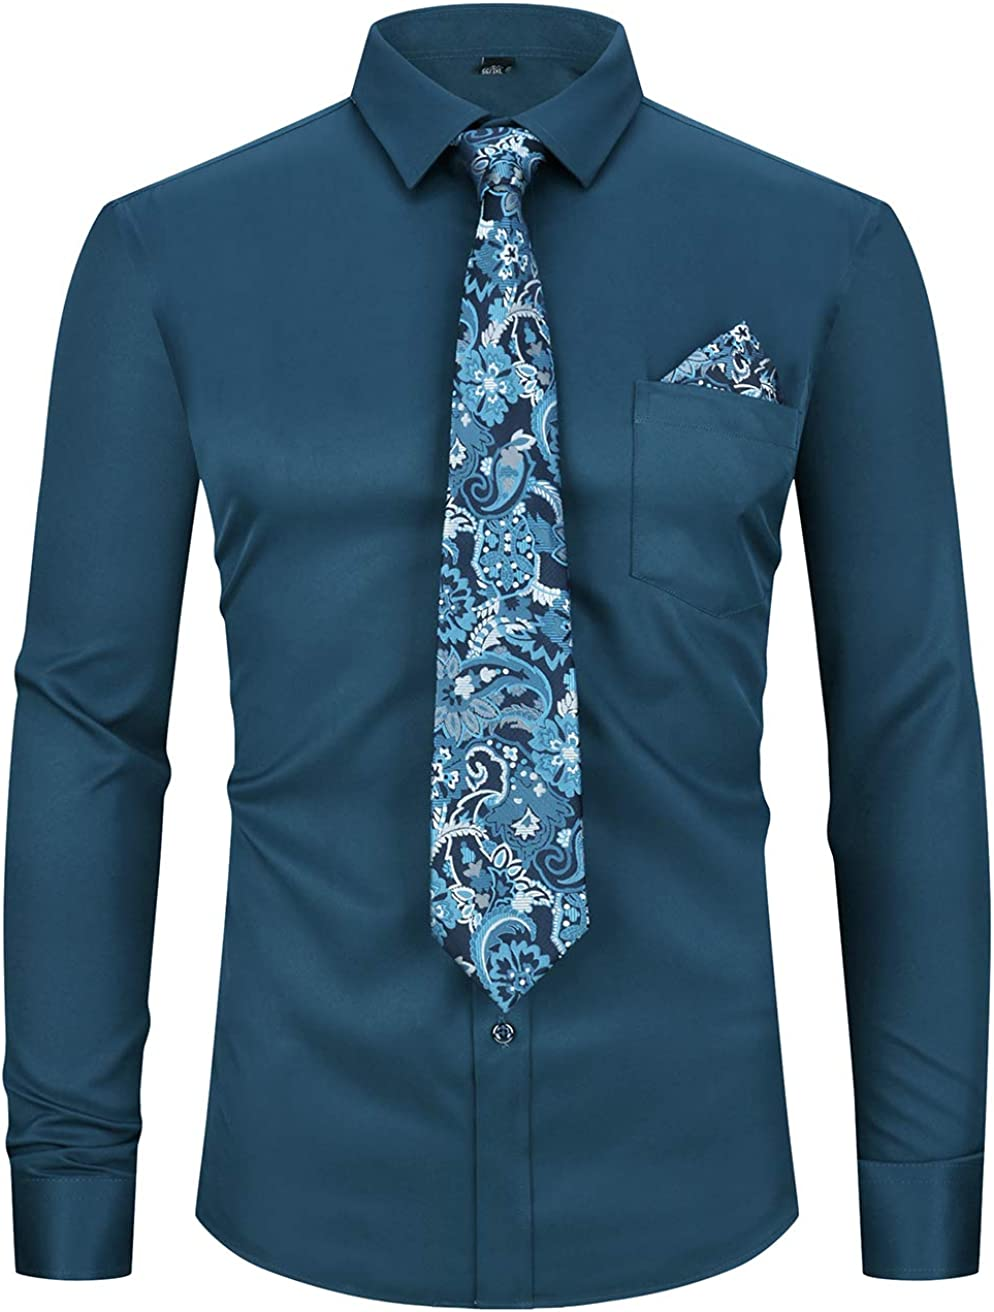 XTAPAN Men's Dress Shirt Three Piece Set Business Bright Color Slim Fit with Tie and Handkerchief Long Sleeve Lake Blue US M